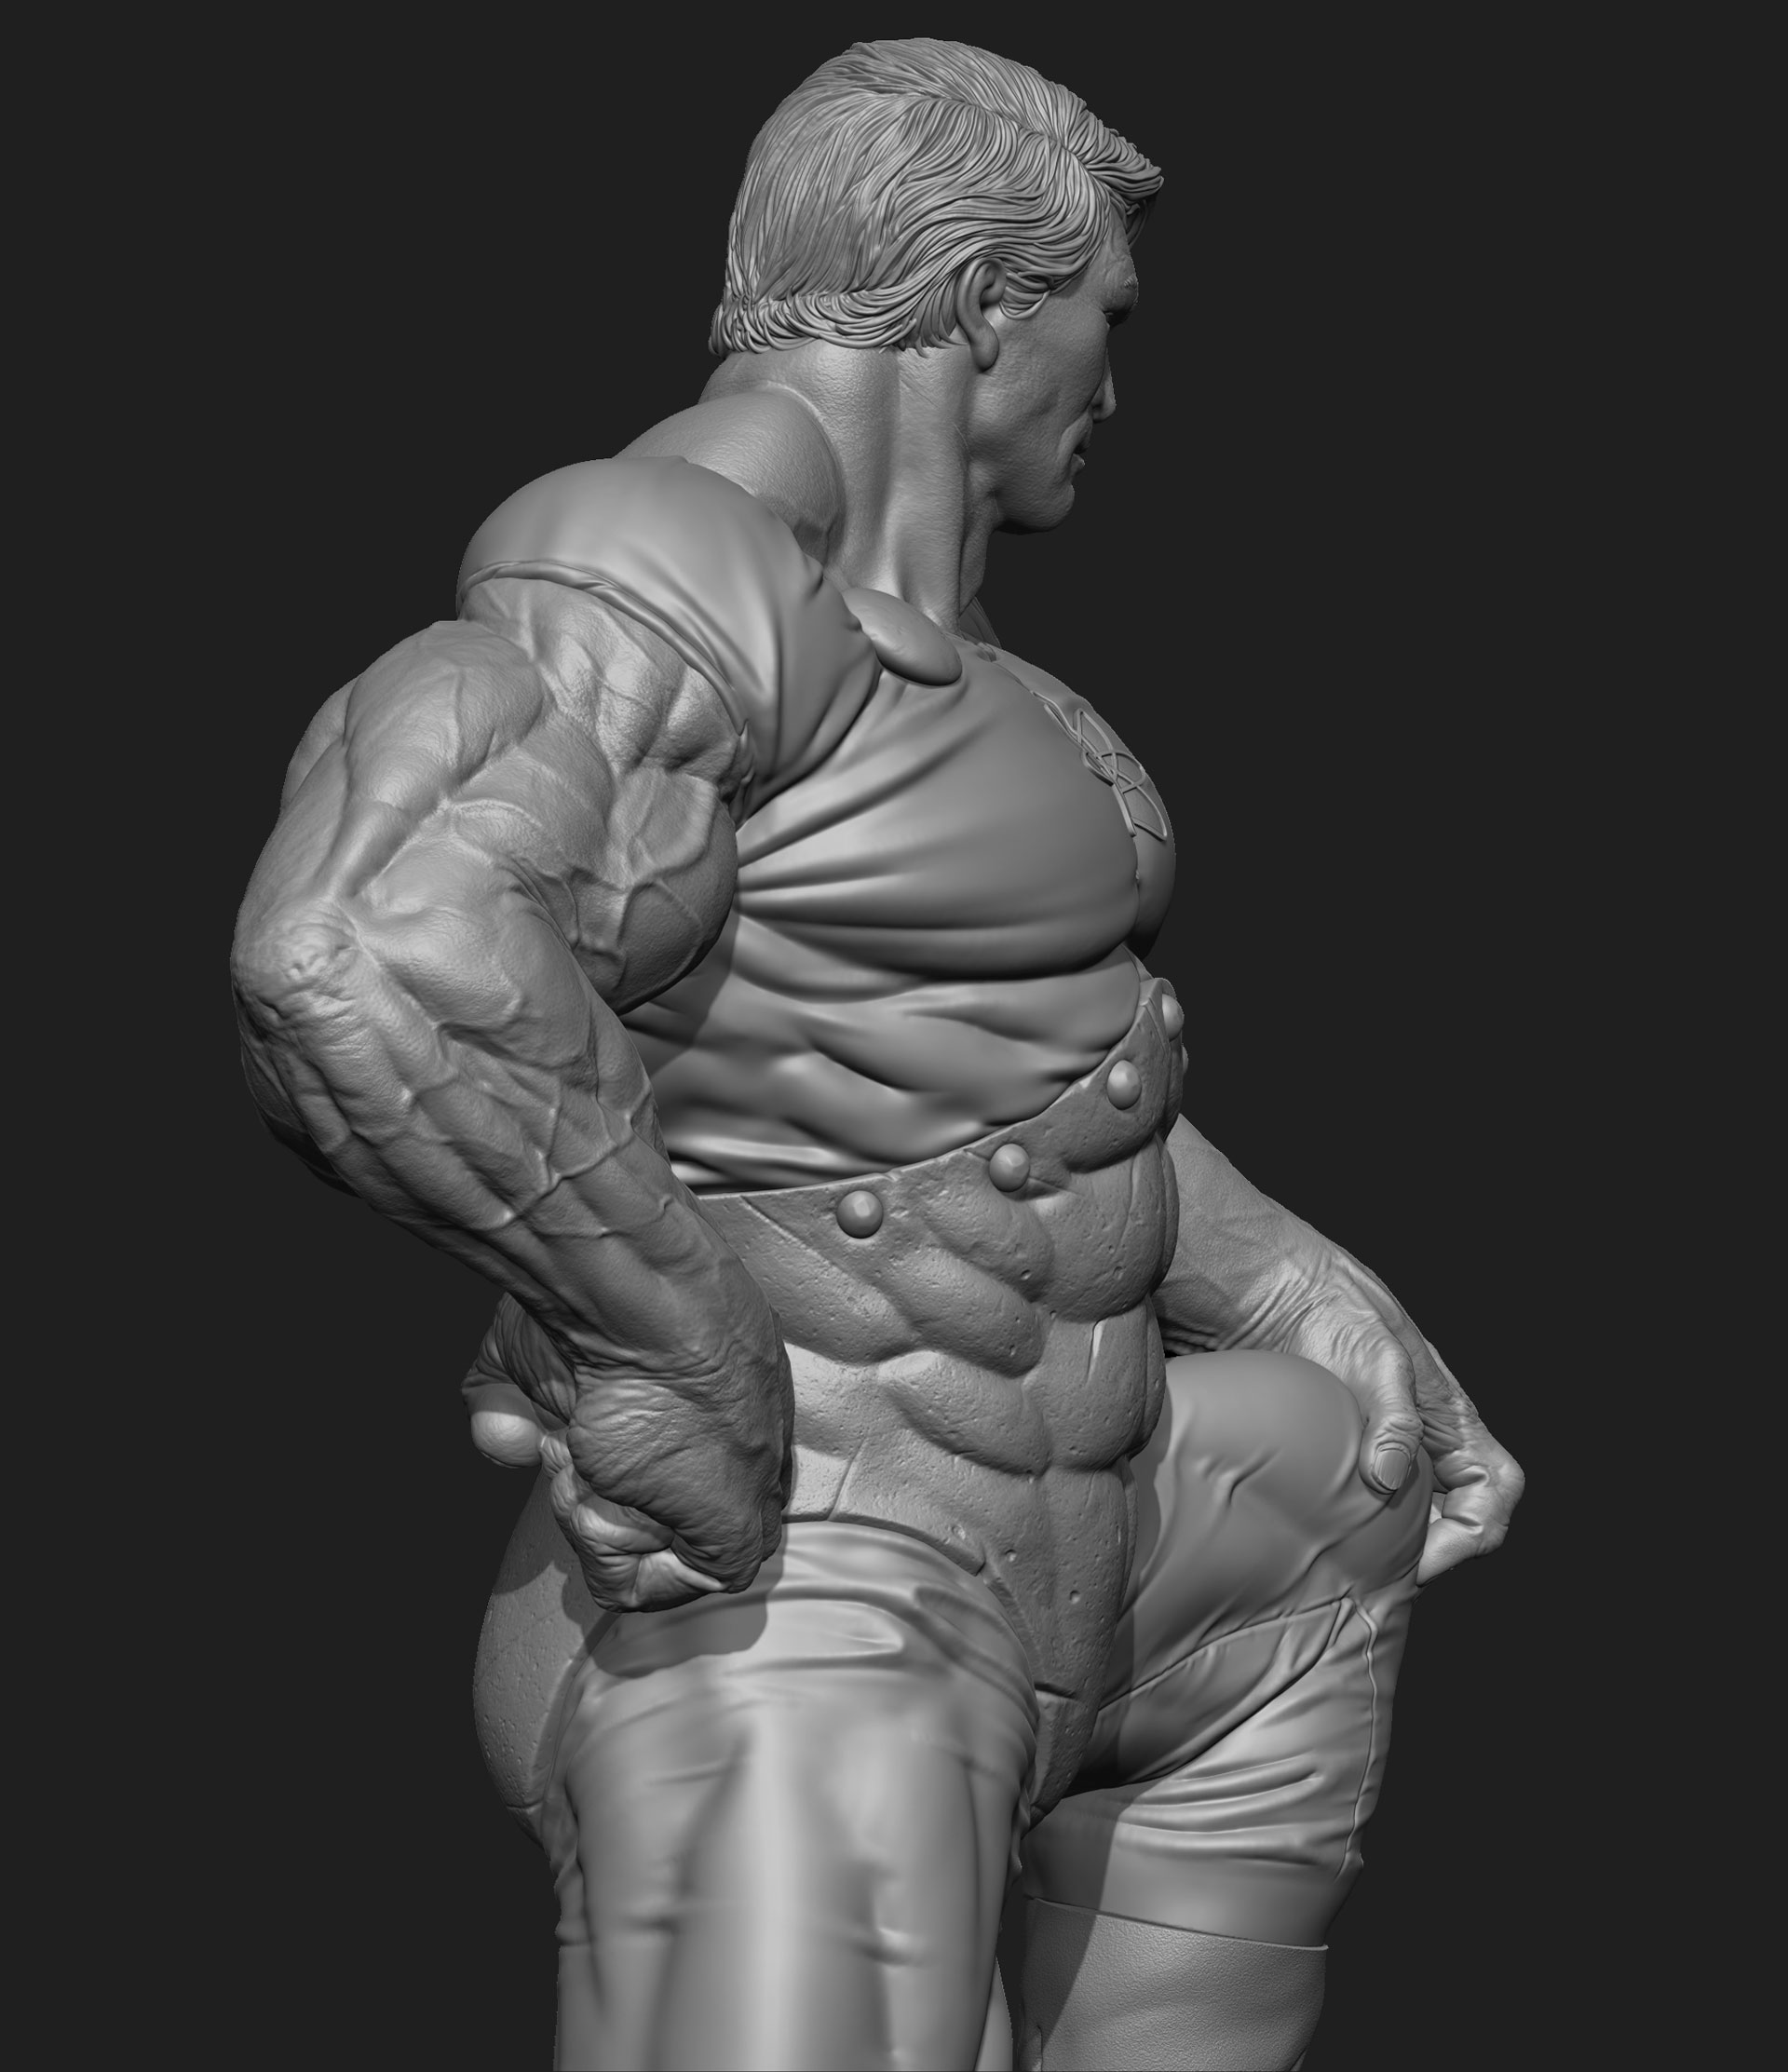 HyperionZbrushGray_13